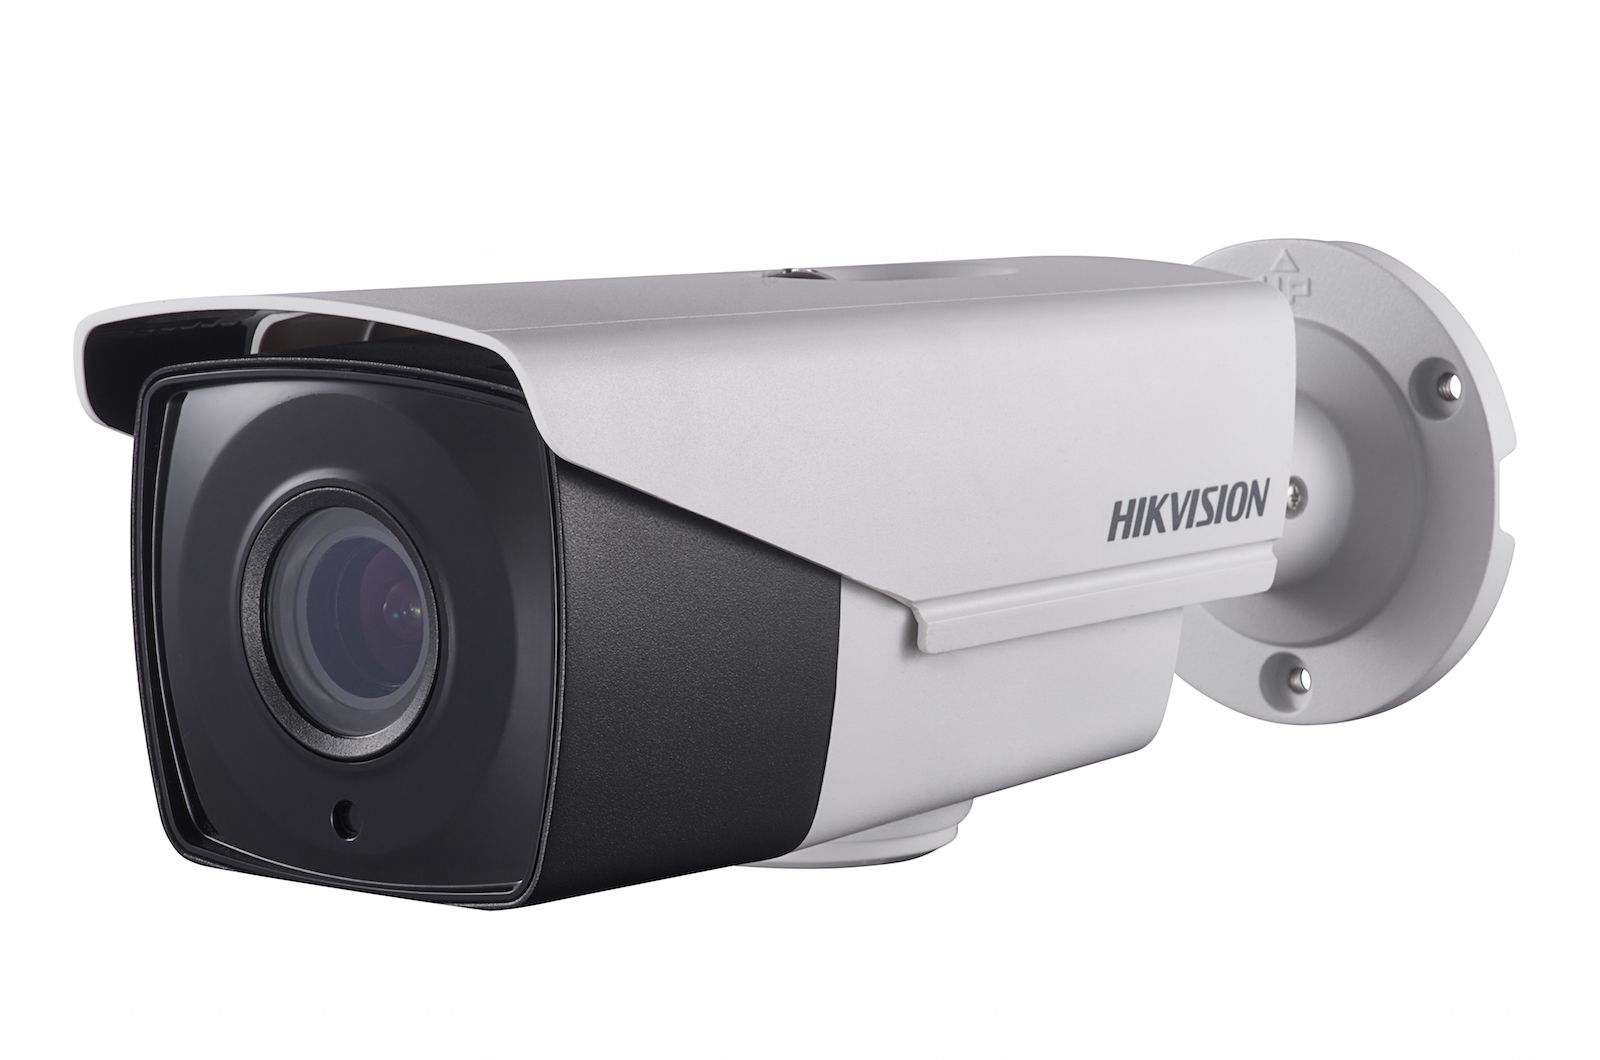 HIKVISION DS-2CE16D8T-IT3E (3.6mm)